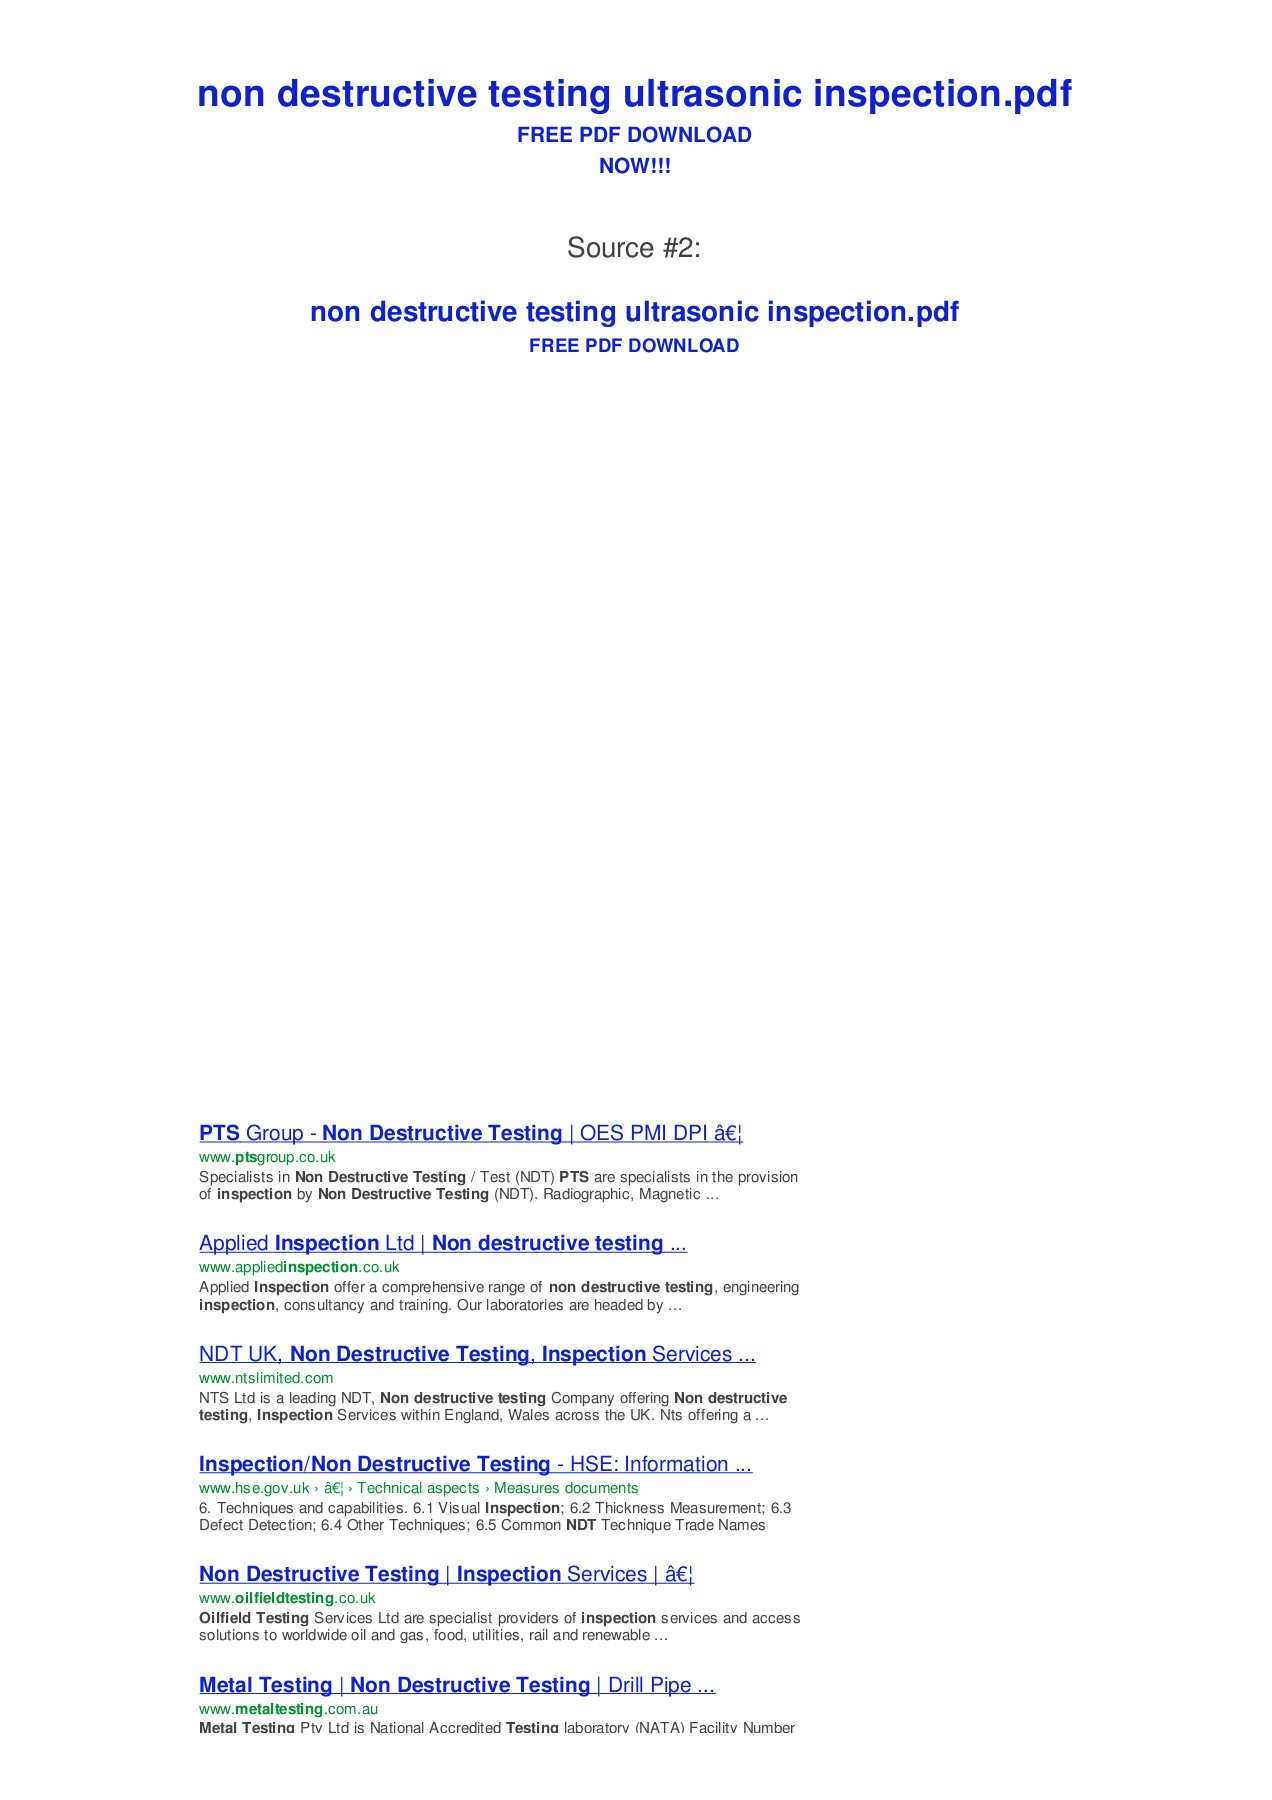 non destructive testing ultrasonic inspection - Bing Pages 1